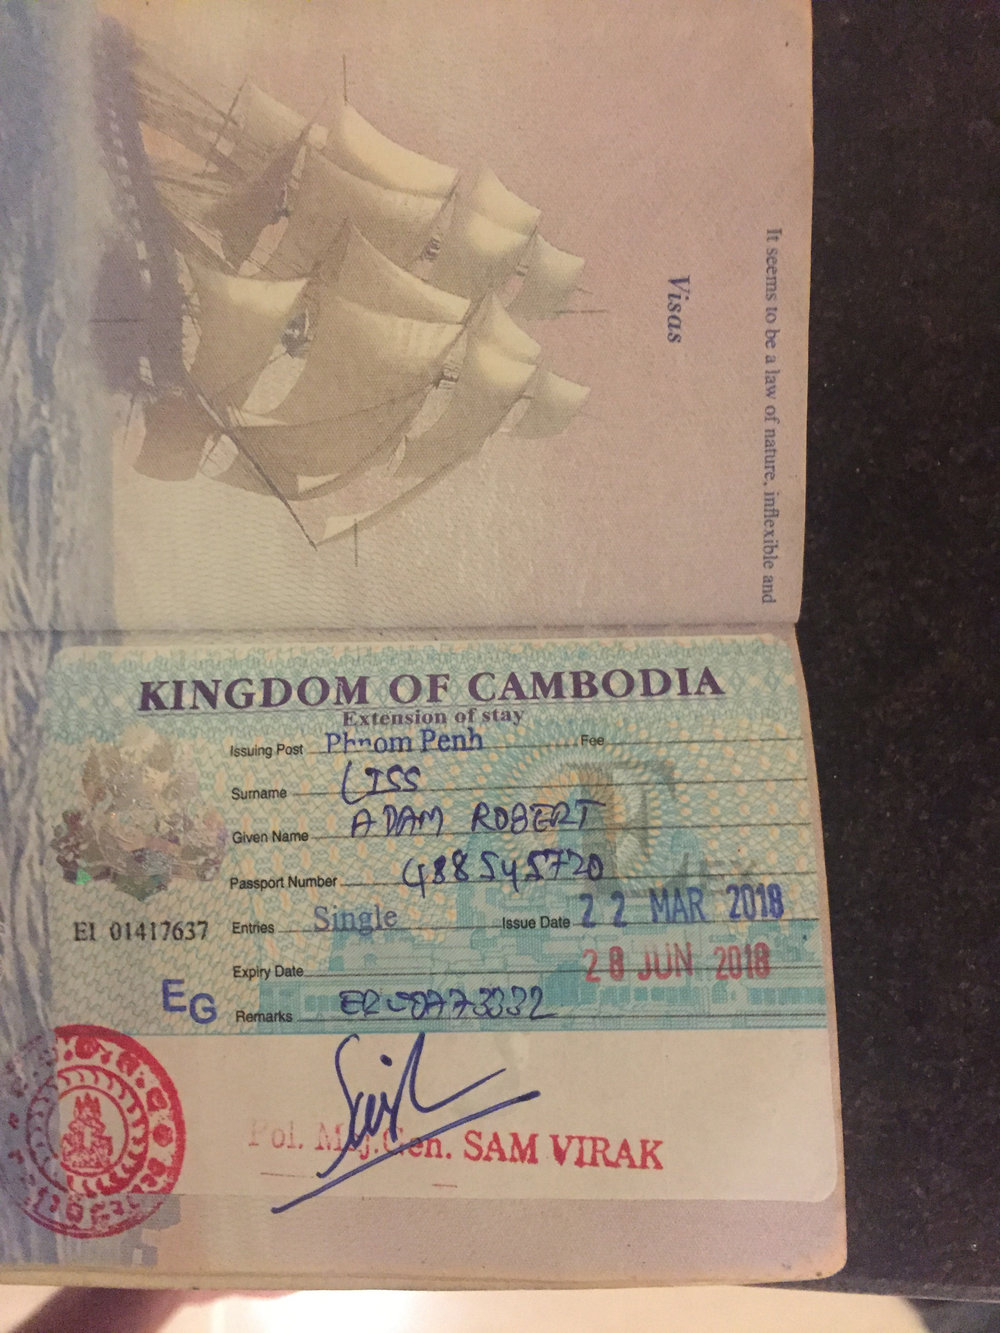 The fact that each new visa takes up a whole page really grinds my gears. I'm going to be out of pages soon thanks to Cambodia :(